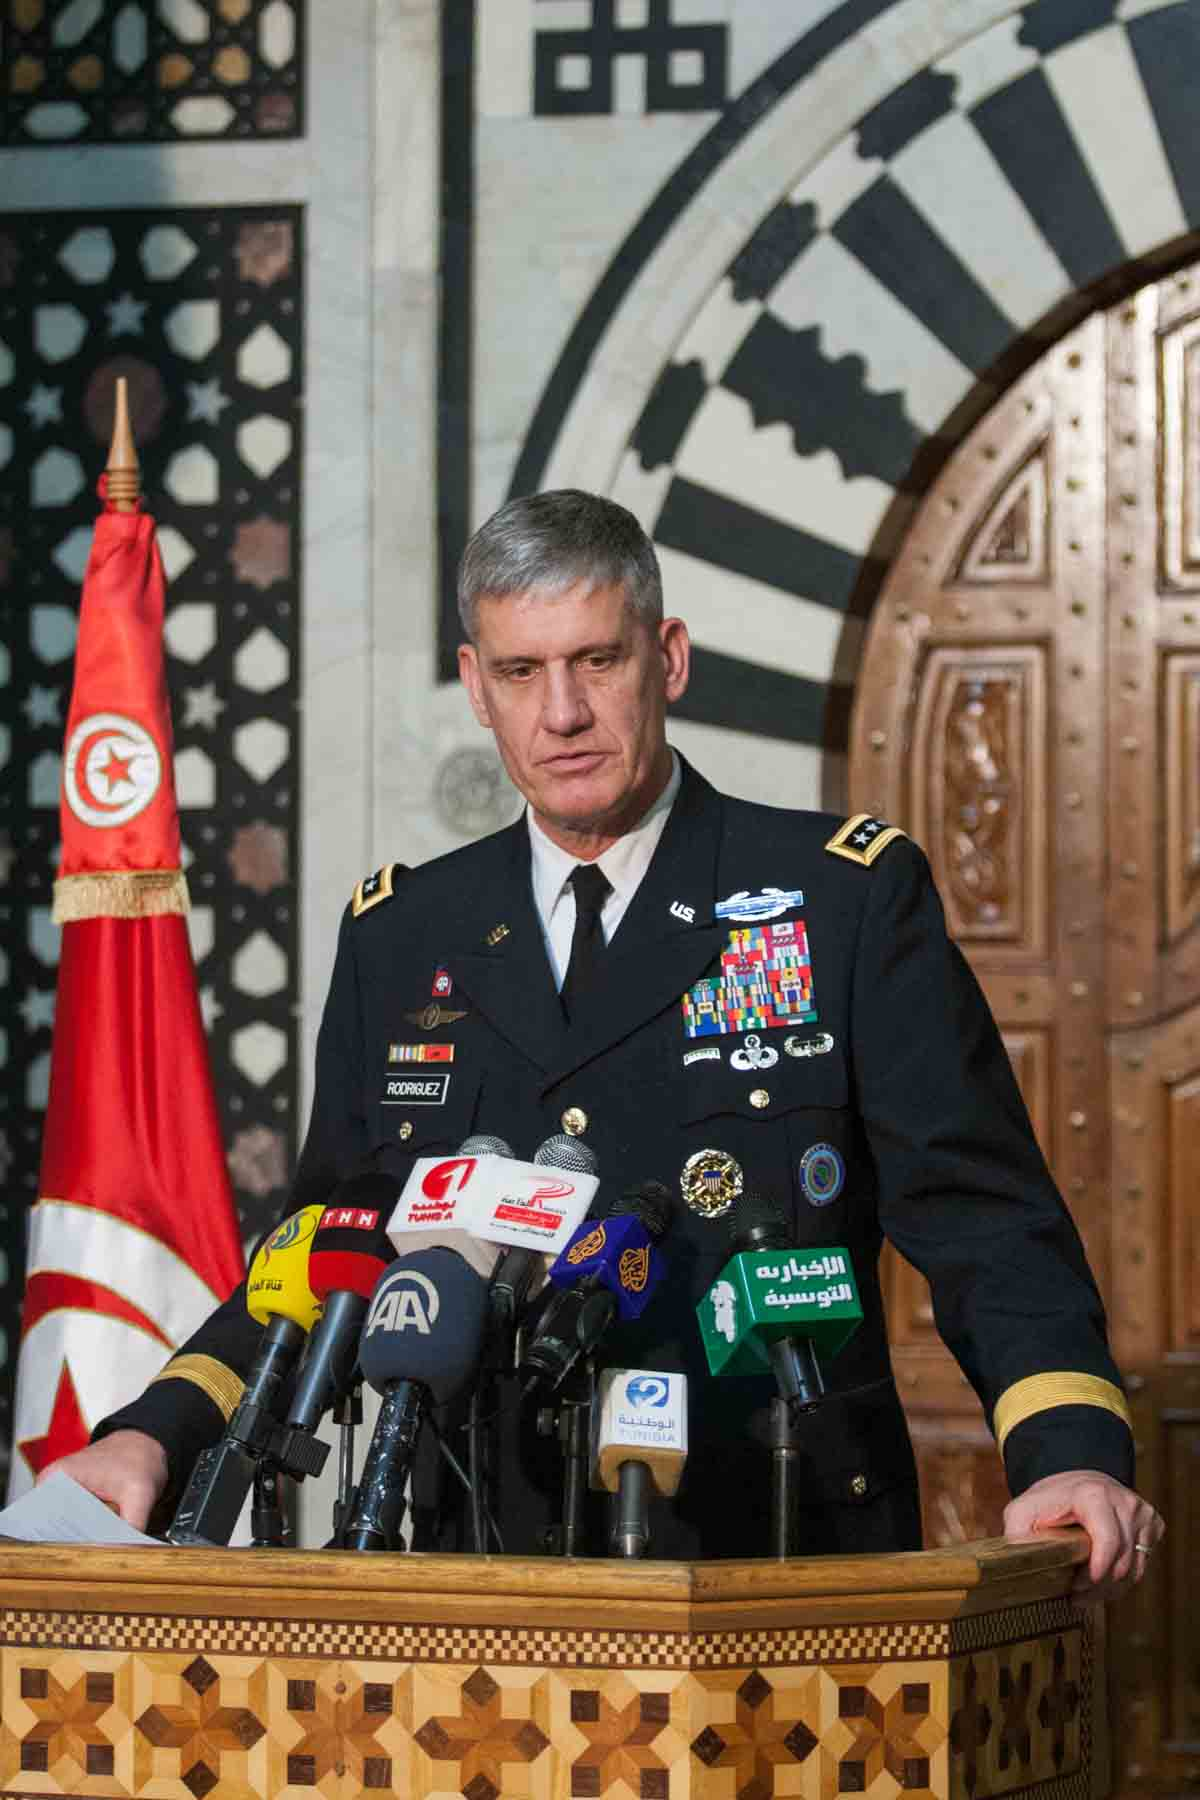 United States Army General David M. Rodriguez serving as the Commander for United States Africa Command (AFRICOM) meets with Ali Laarayedh (Not seen), the Tunisian PM, on Nov. 21 in Tunisia.